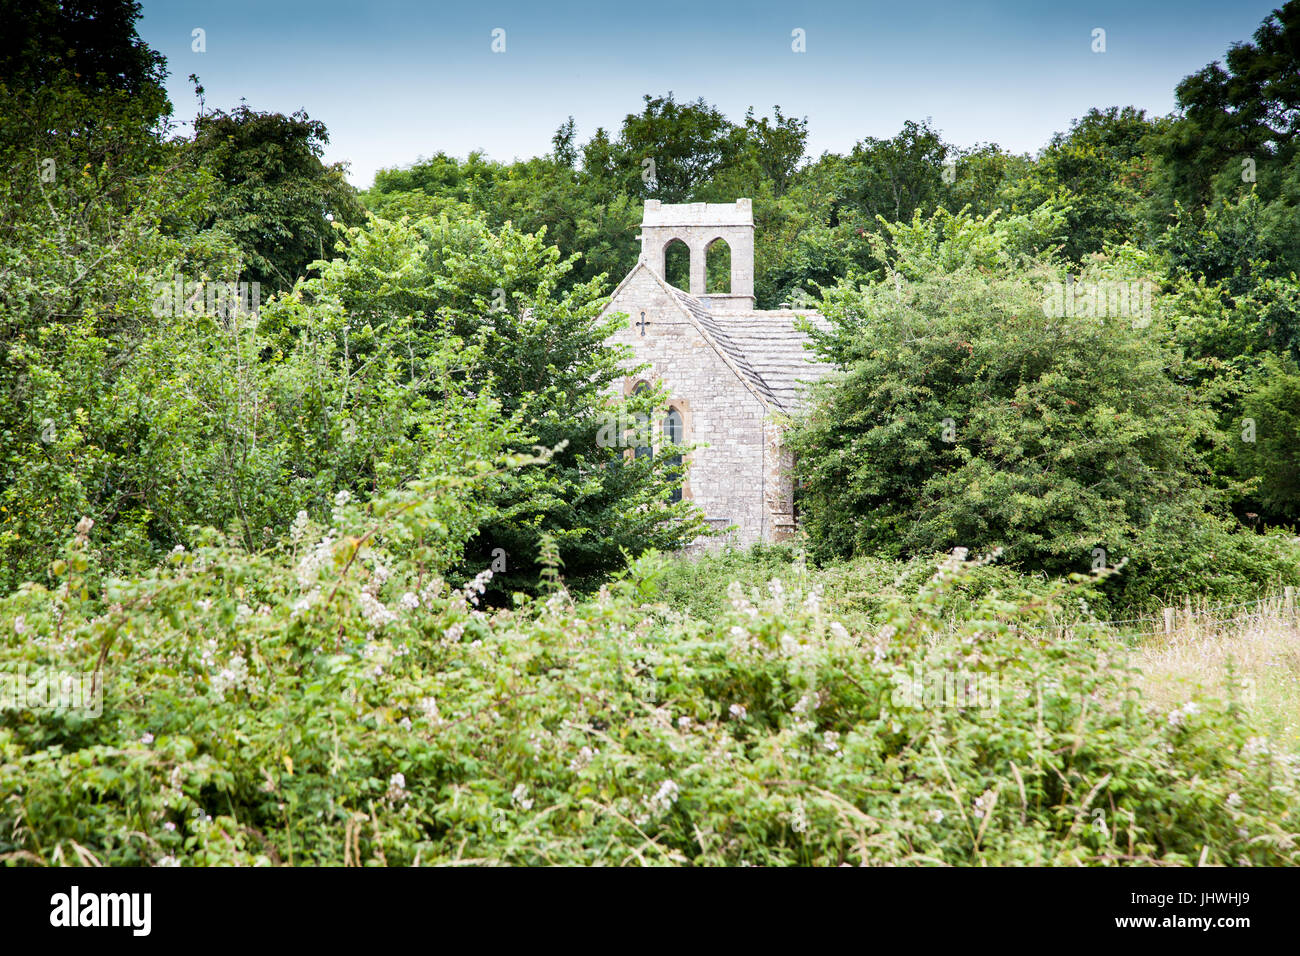 Tyneham Village, near Wareham, Dorset. Part of the Purbecks. Evacuated in 1943 and remains deserted. Church and - Stock Image